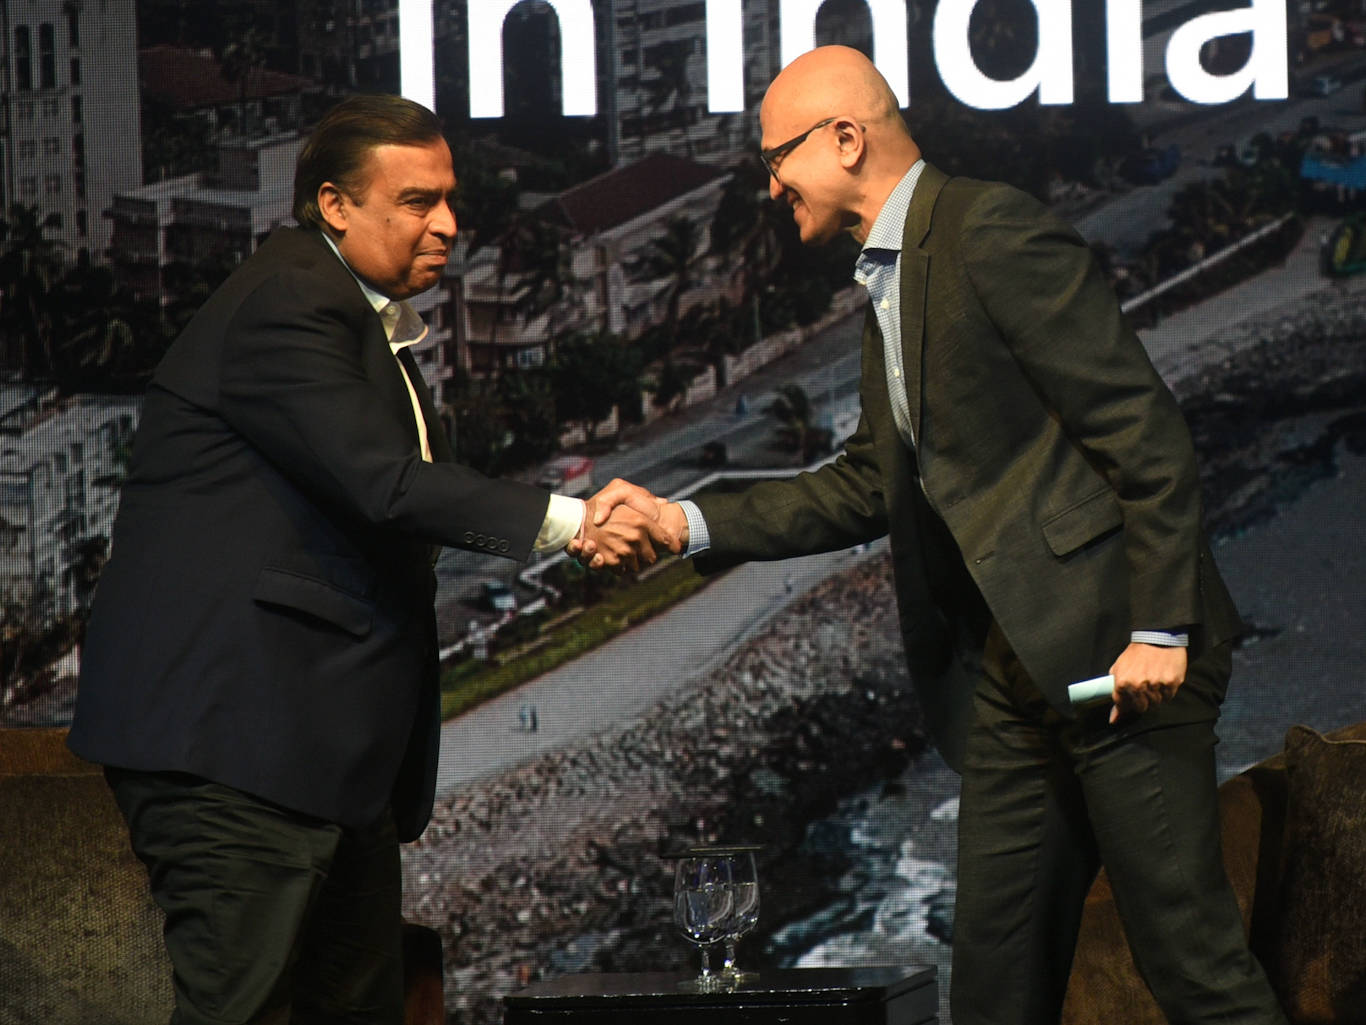 Zuckerberg spoke to Ambani but there was no chemistry — even with a multi-million dollar partnership between them